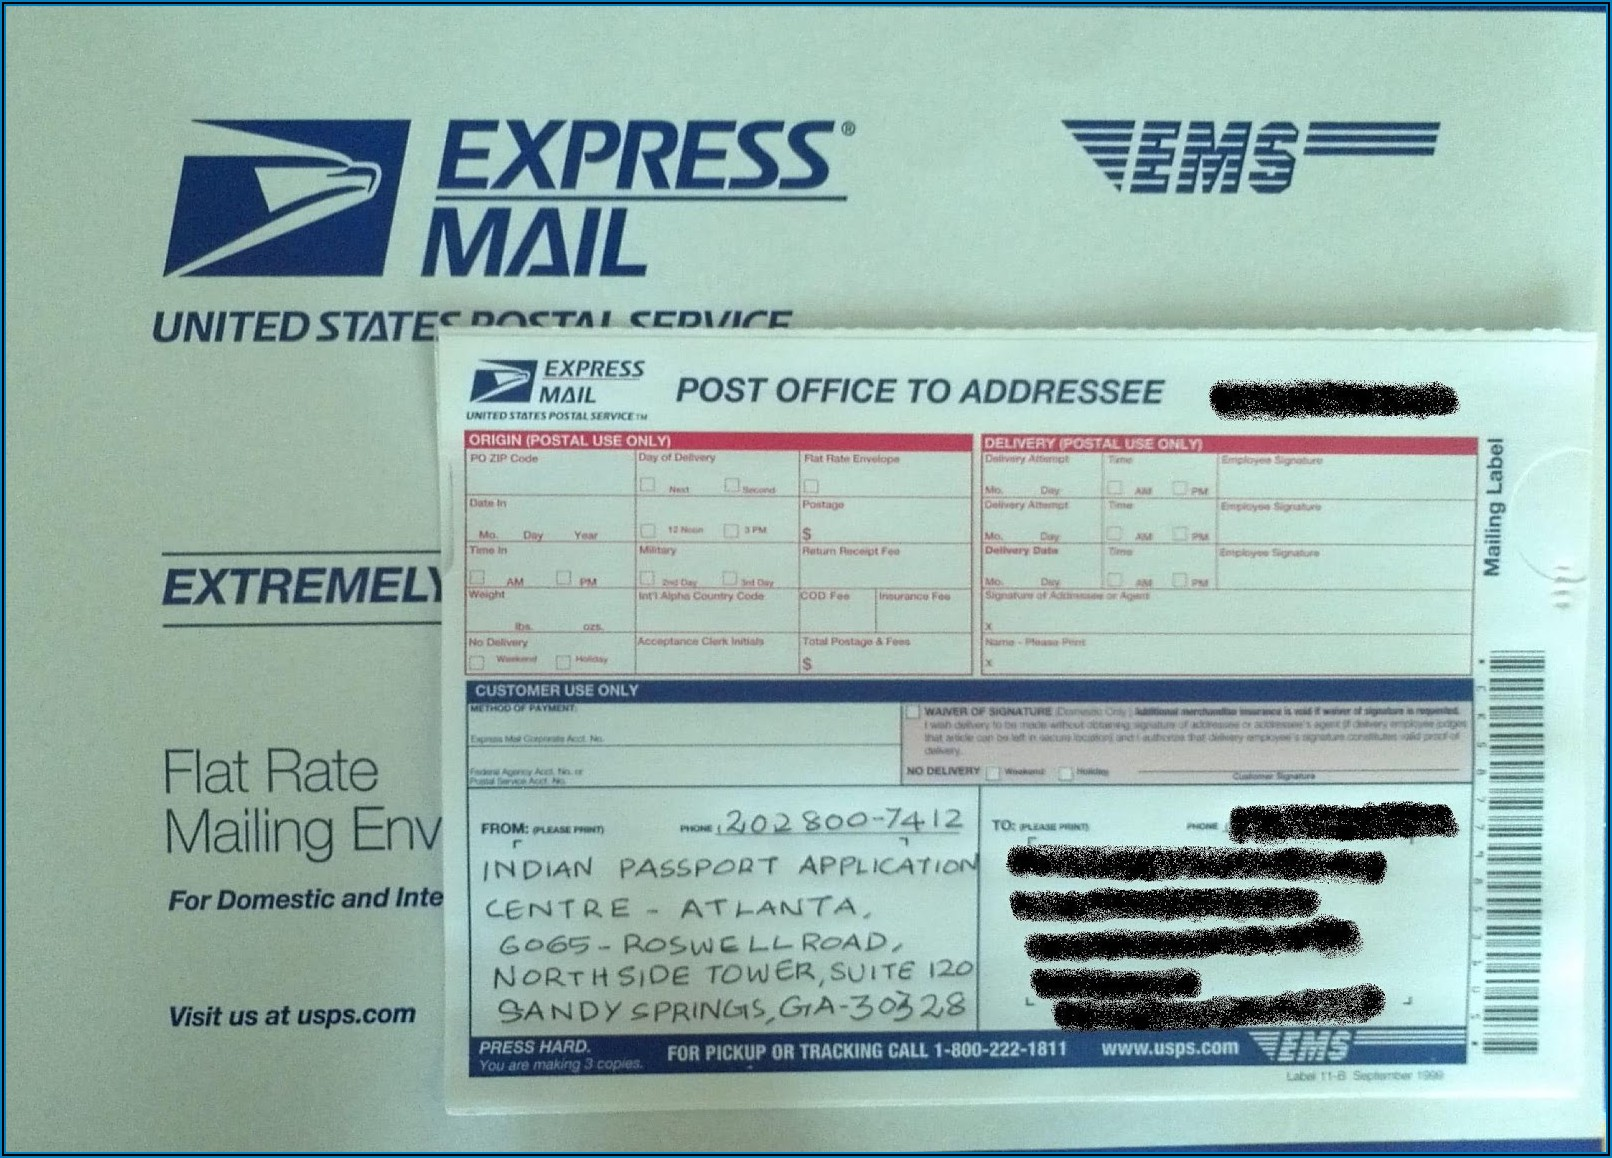 How To Get A Self Addressed Prepaid Envelope From Ups